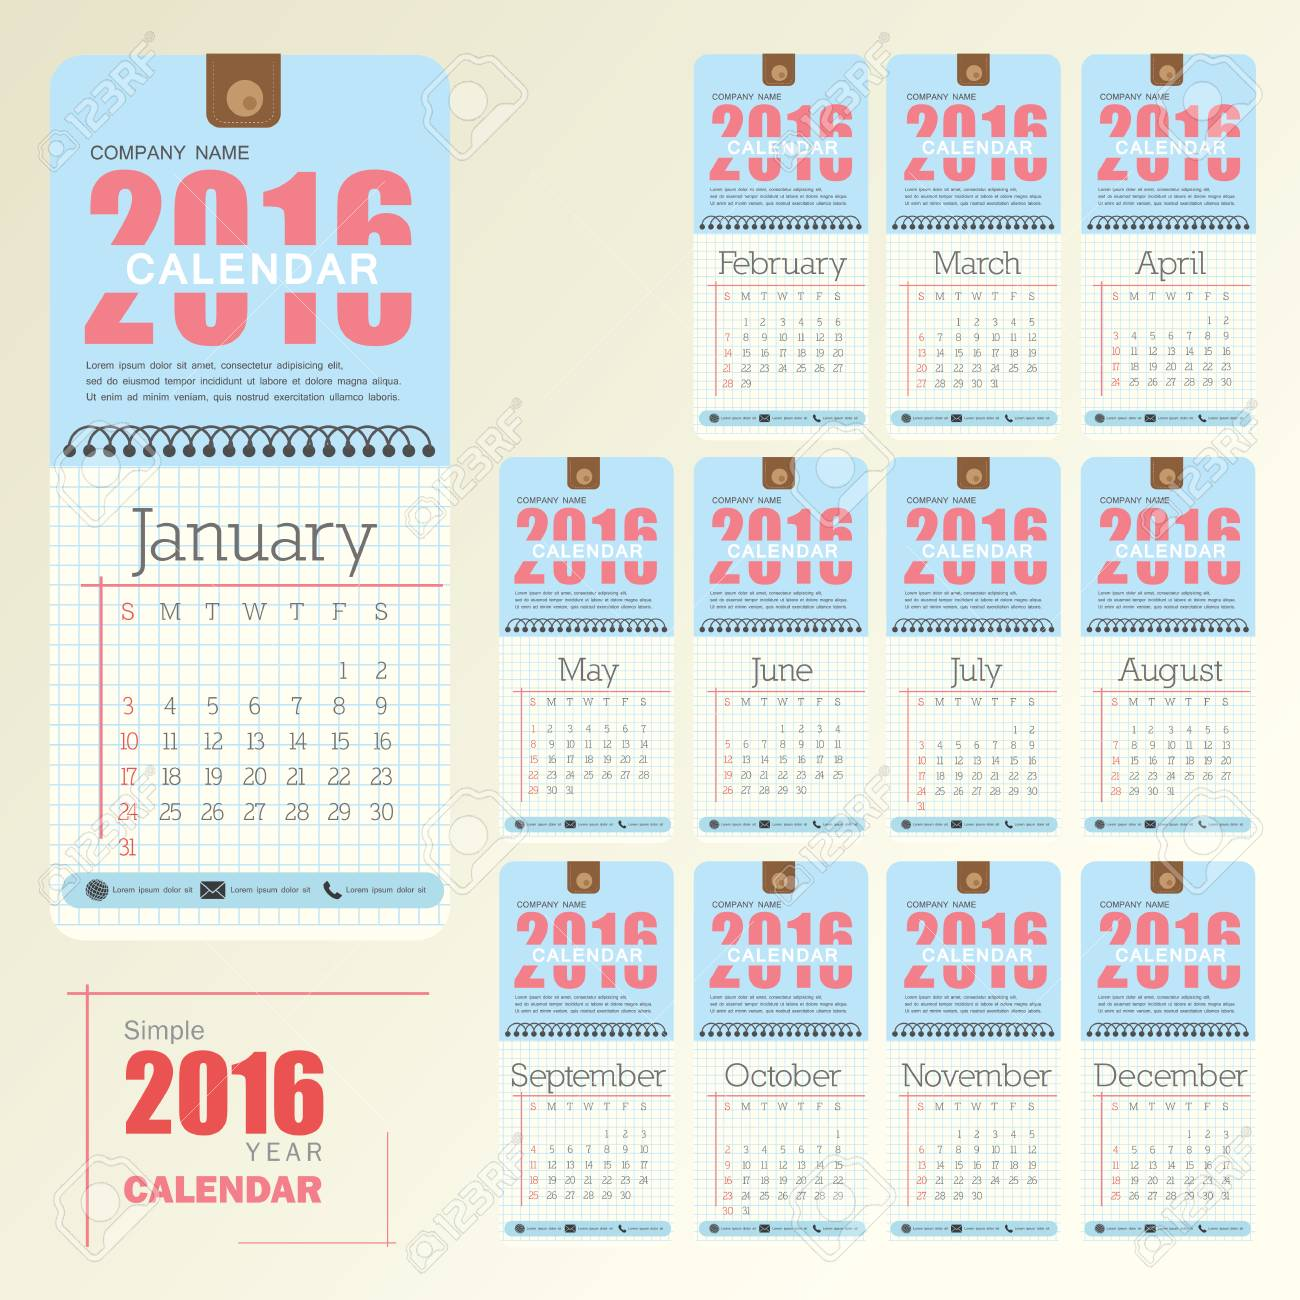 Office Calendar 2016 : Desk calendar vector design template big set of months